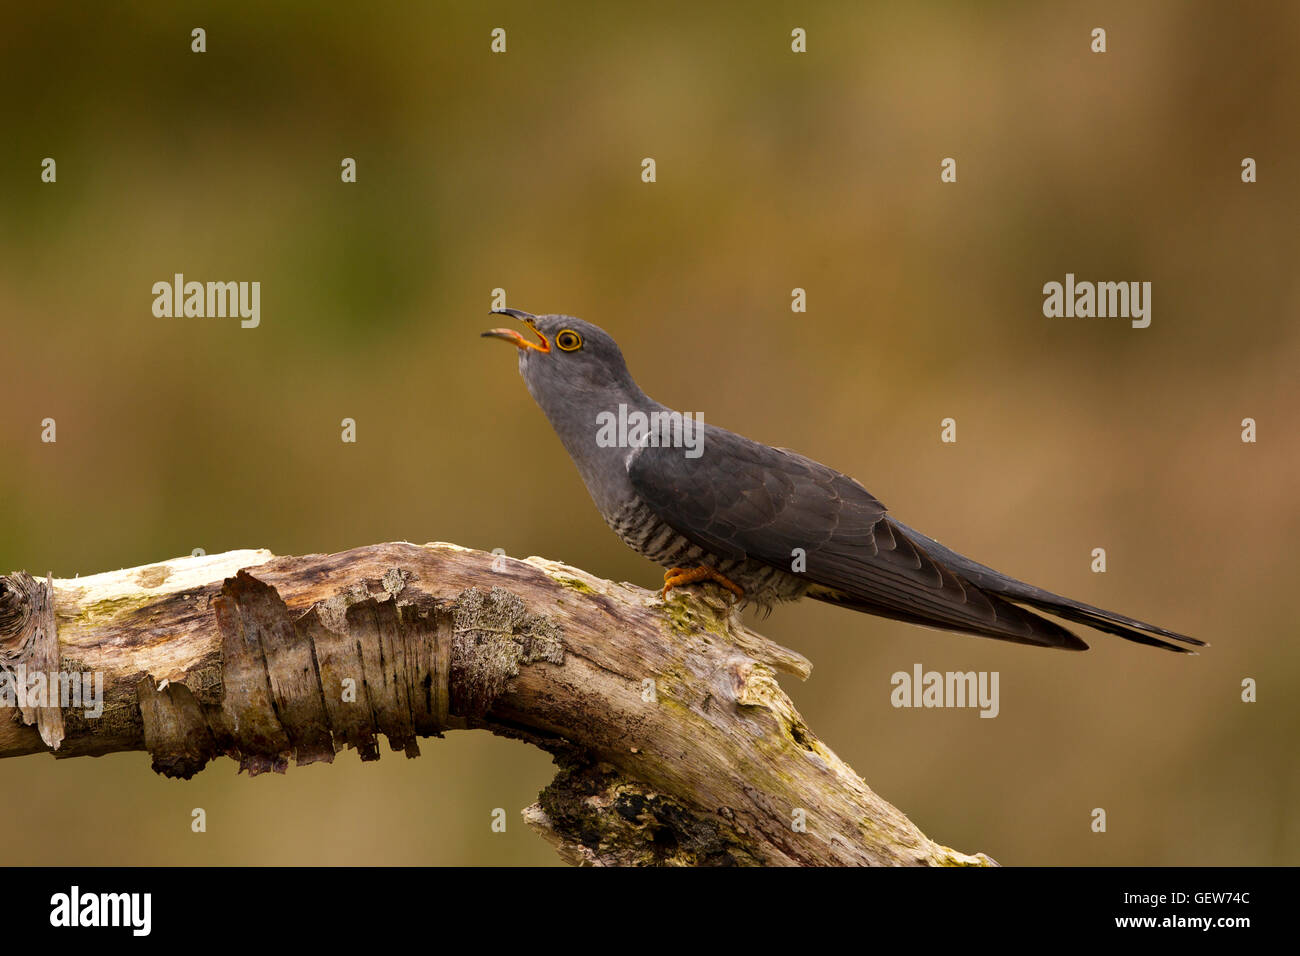 Cuckoo Calling Stock Photo